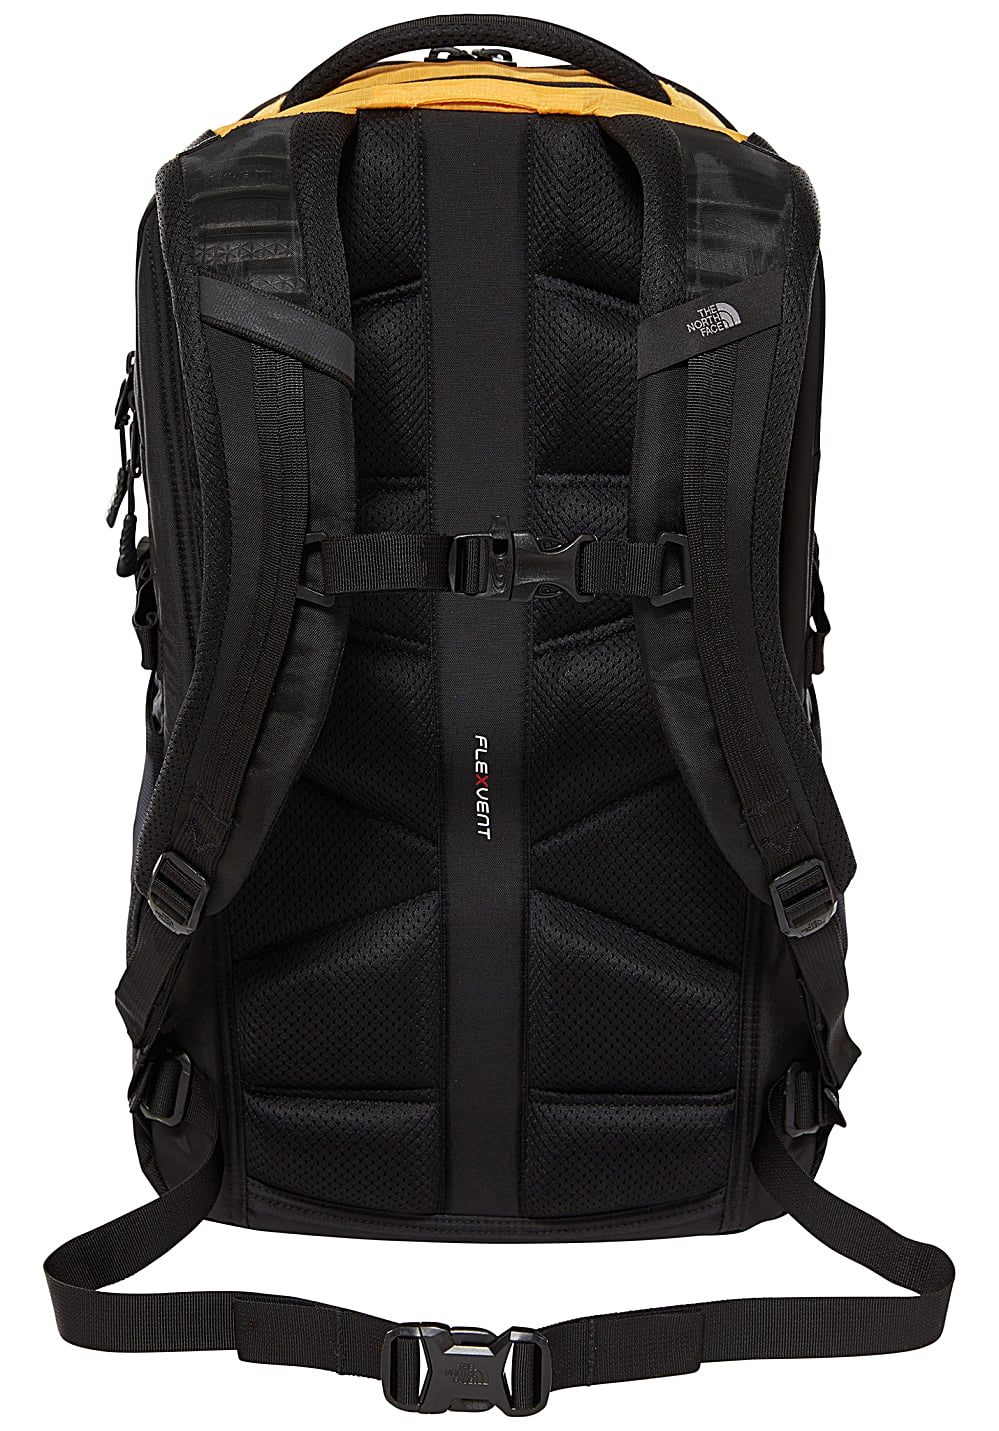 31799ff6f73 North Face Borealis Backpack Yellow | The Shred Centre